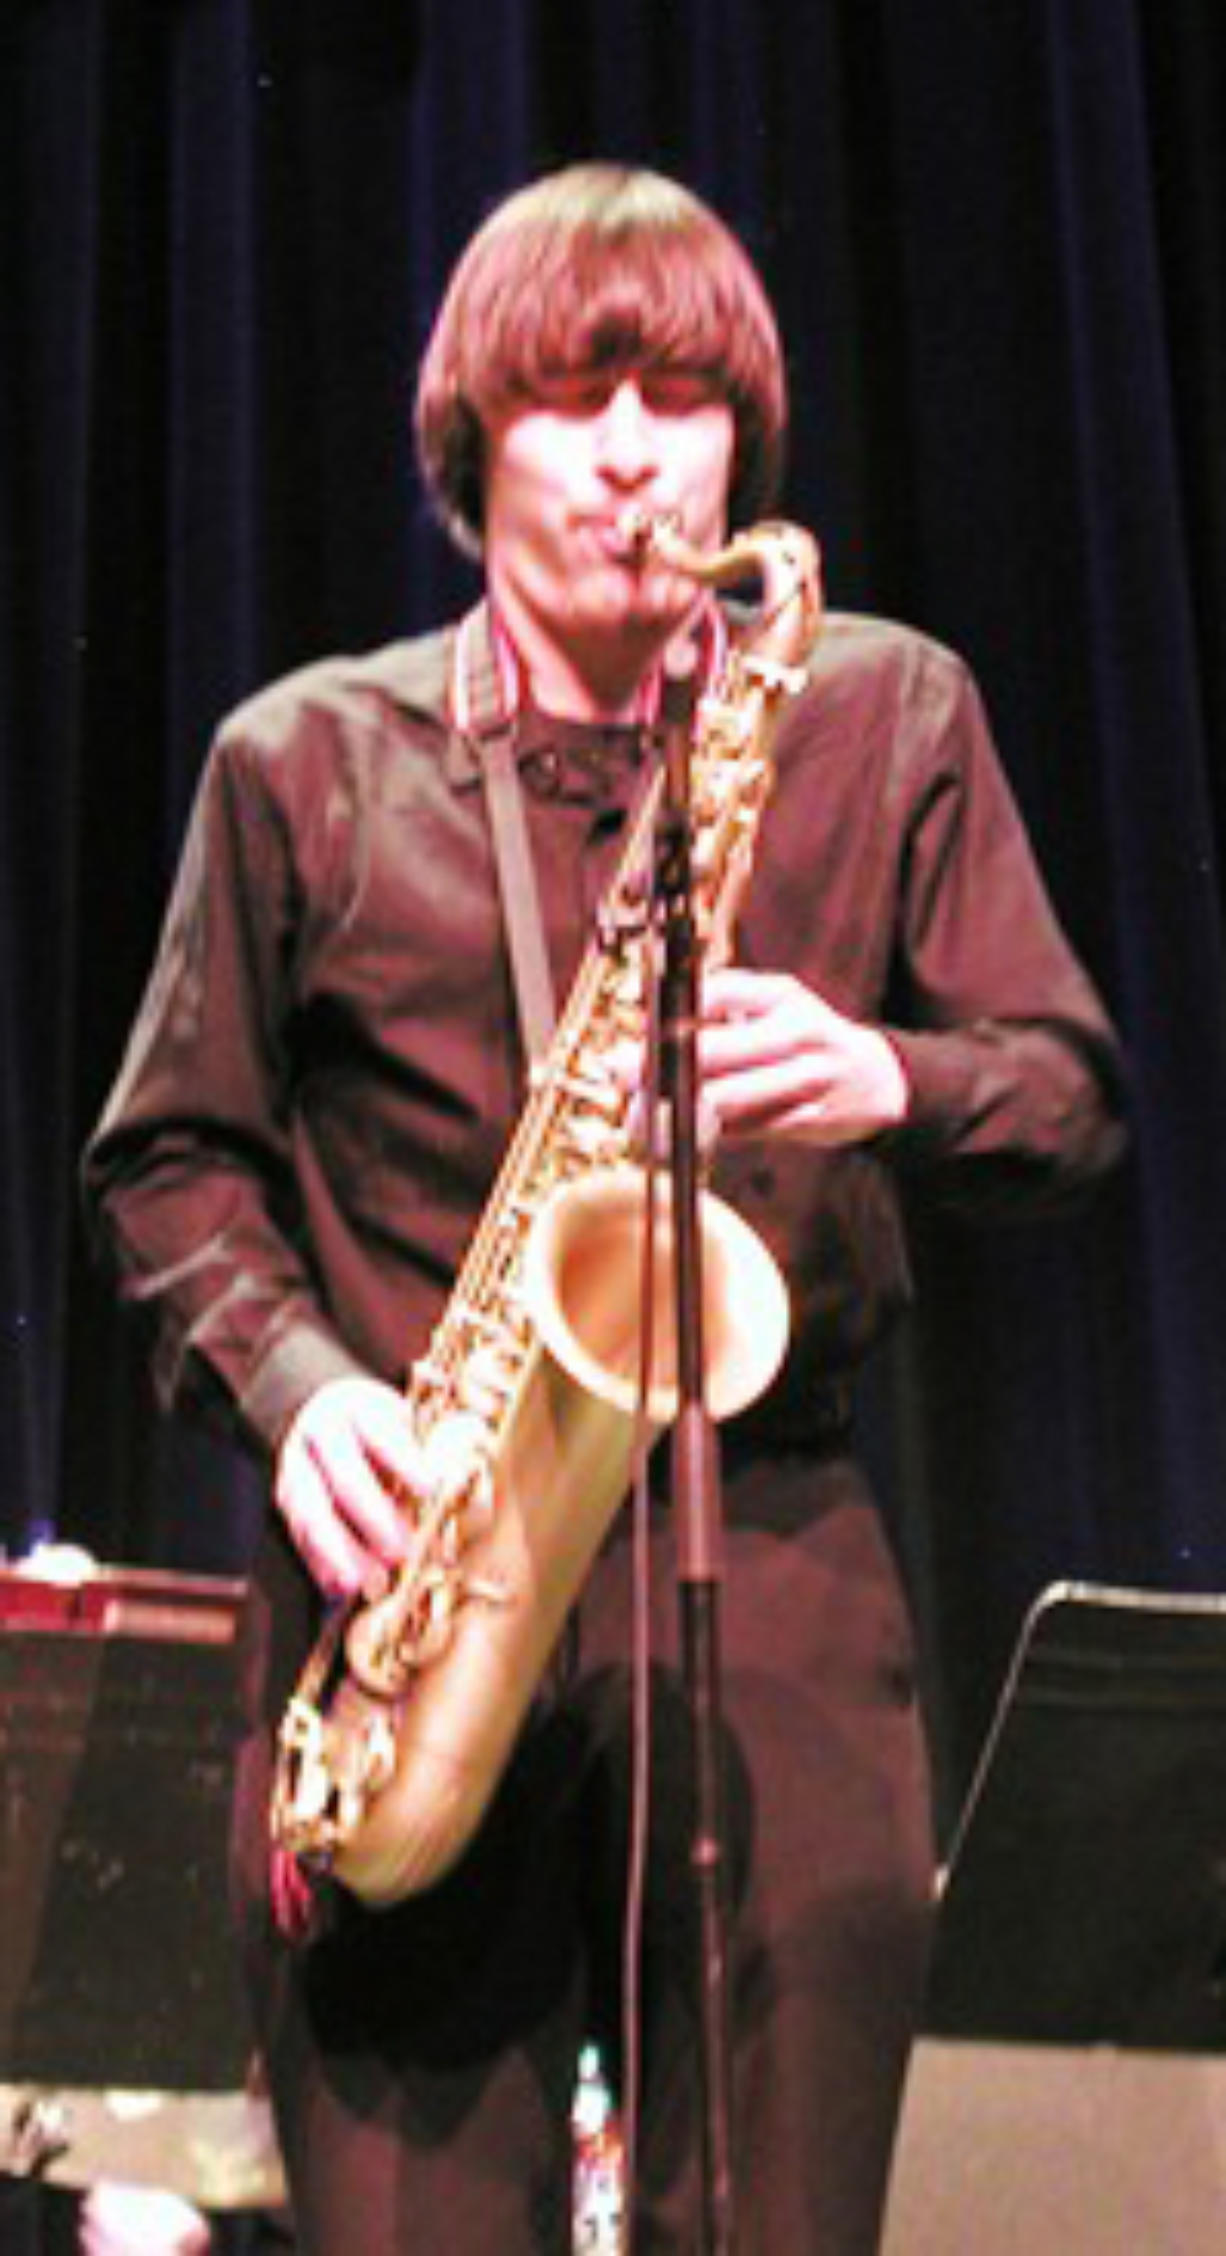 Central Park: Clark College Jazz Ensemble tenor saxophonist David Floratos received an outstanding soloist award from the Eau Claire Jazz Festival and a special citation for outstanding musicianship from the Greeley Jazz Festival.